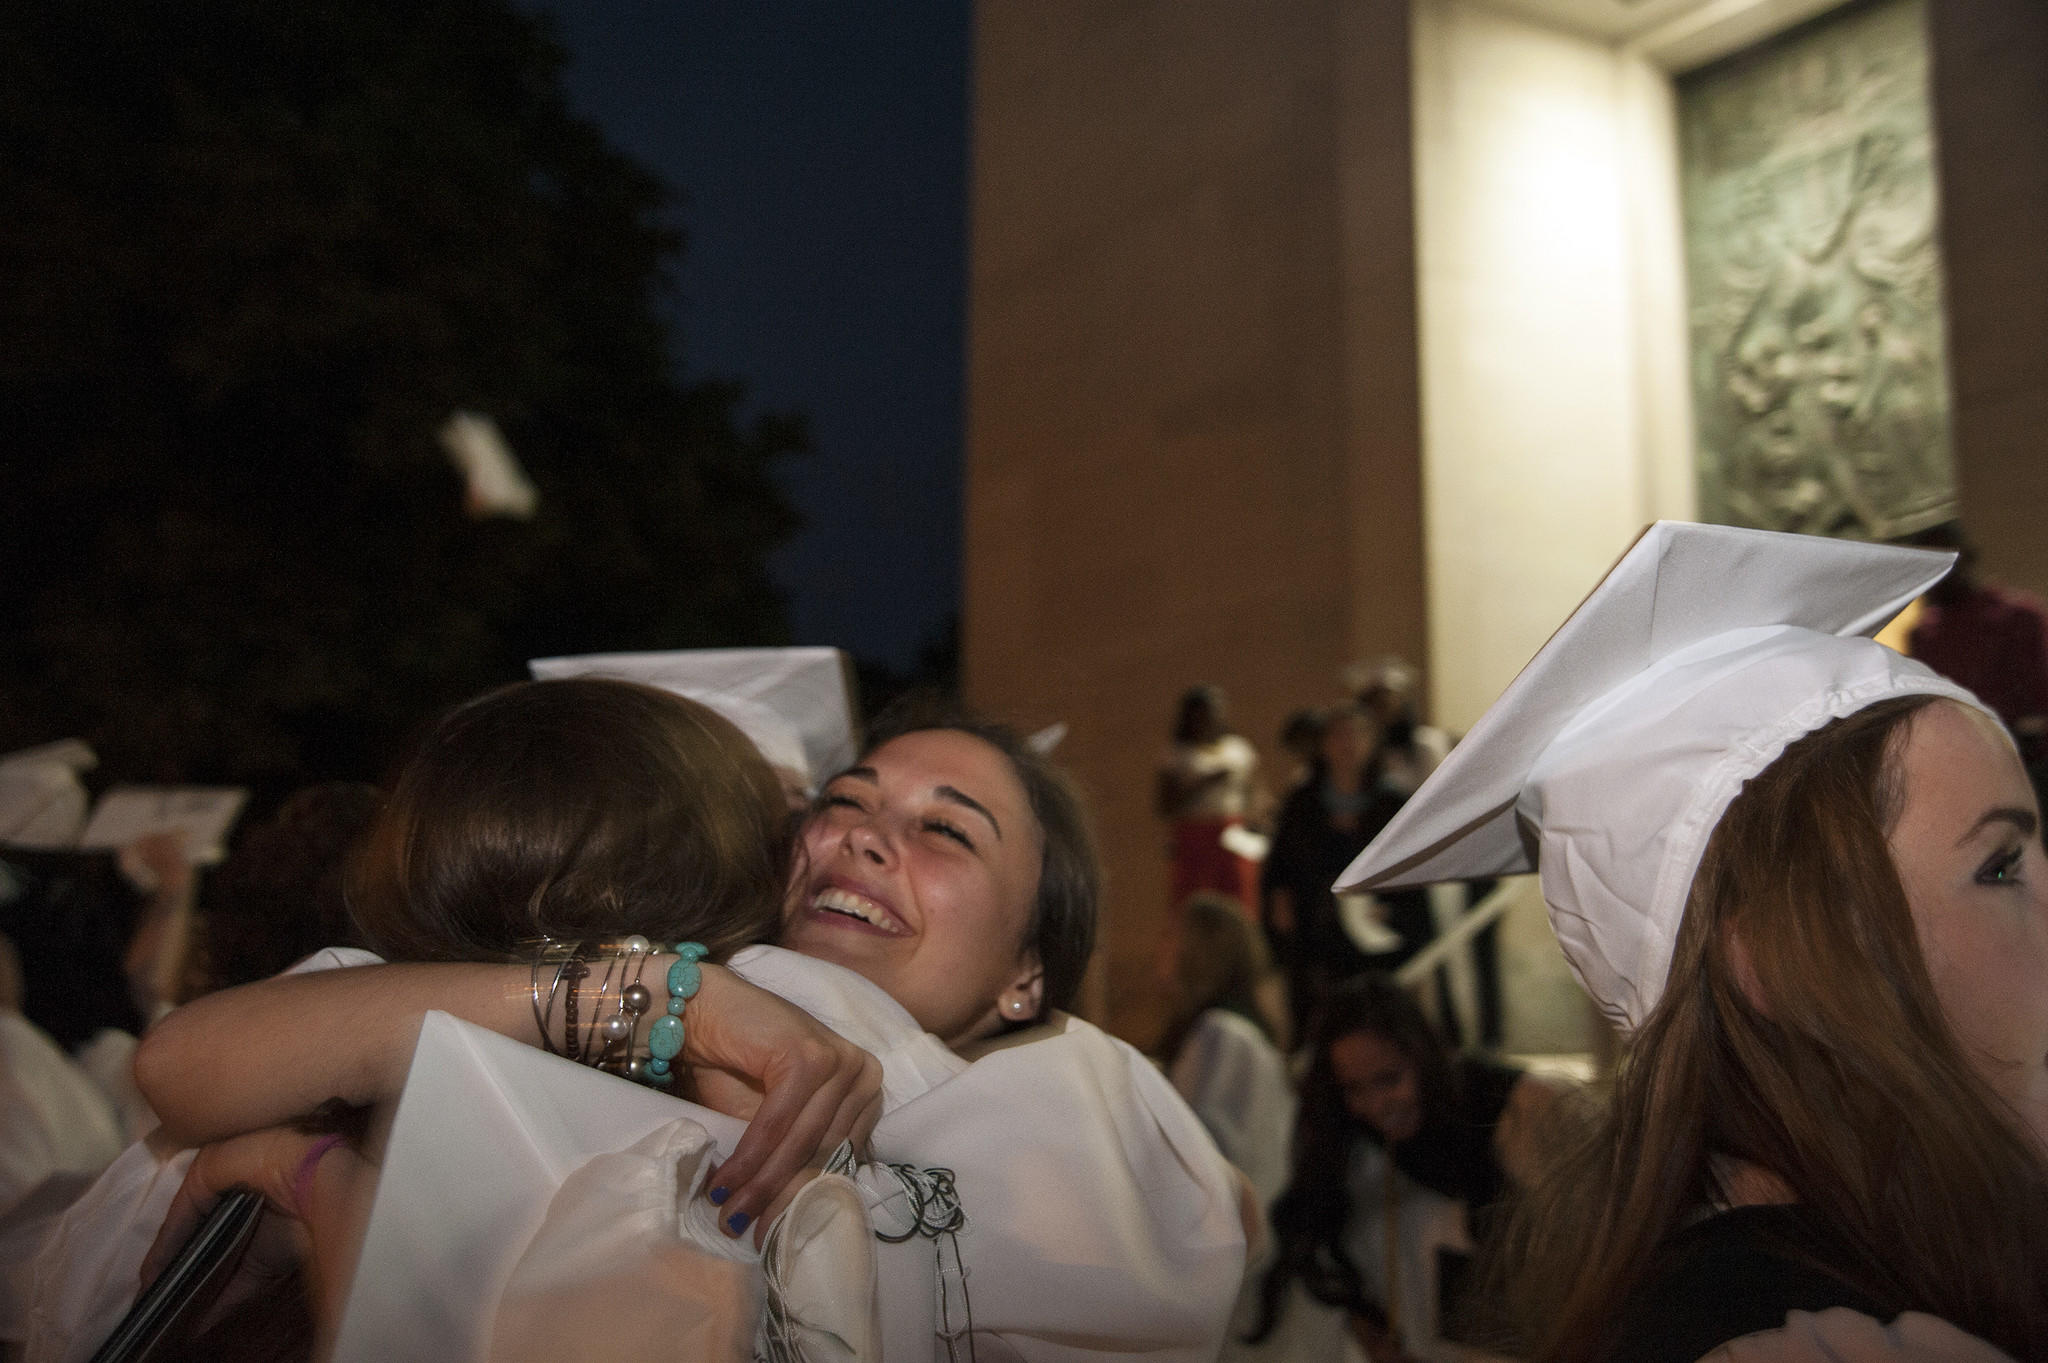 Madison Martinaro celebrates with her fellow graduating classmates from Northwest Catholic High School at the Cathedral of Saint Joseph in Hartford on Wednesday evening.